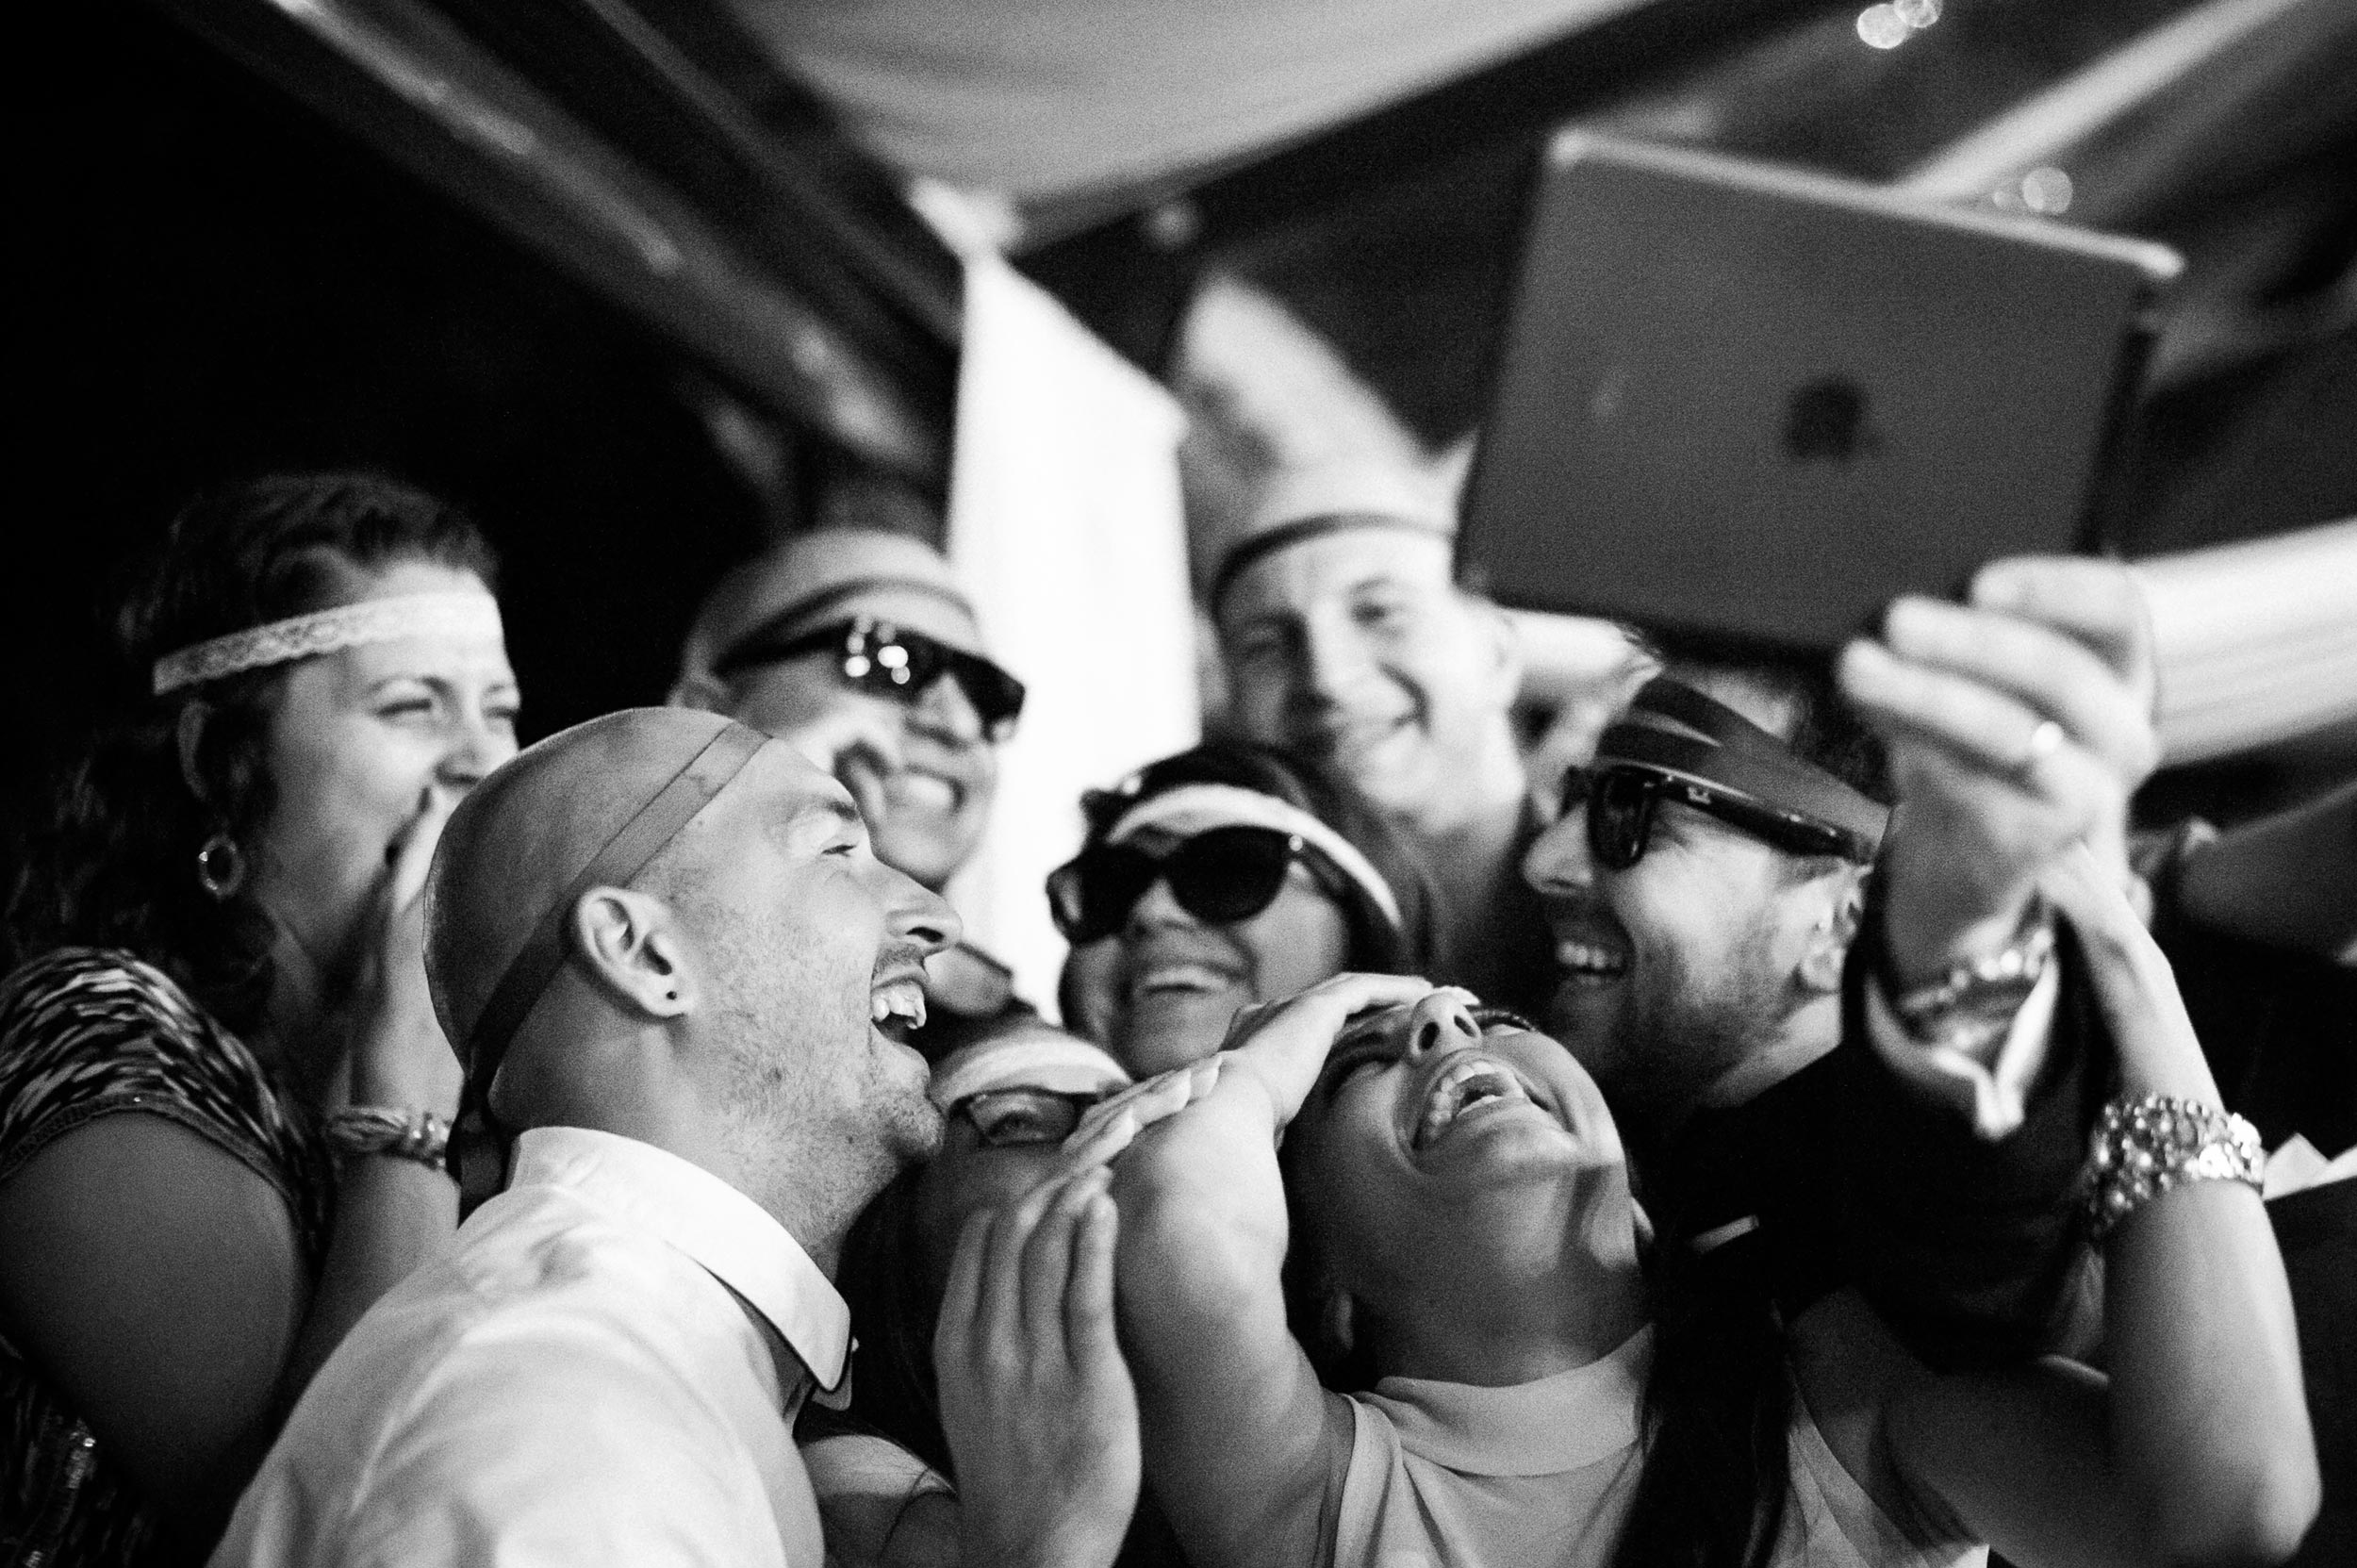 guests-having-fun-with-selfies-at-wedding-reception-in-rome-italy-black-and-white-wedding-photography.jpg